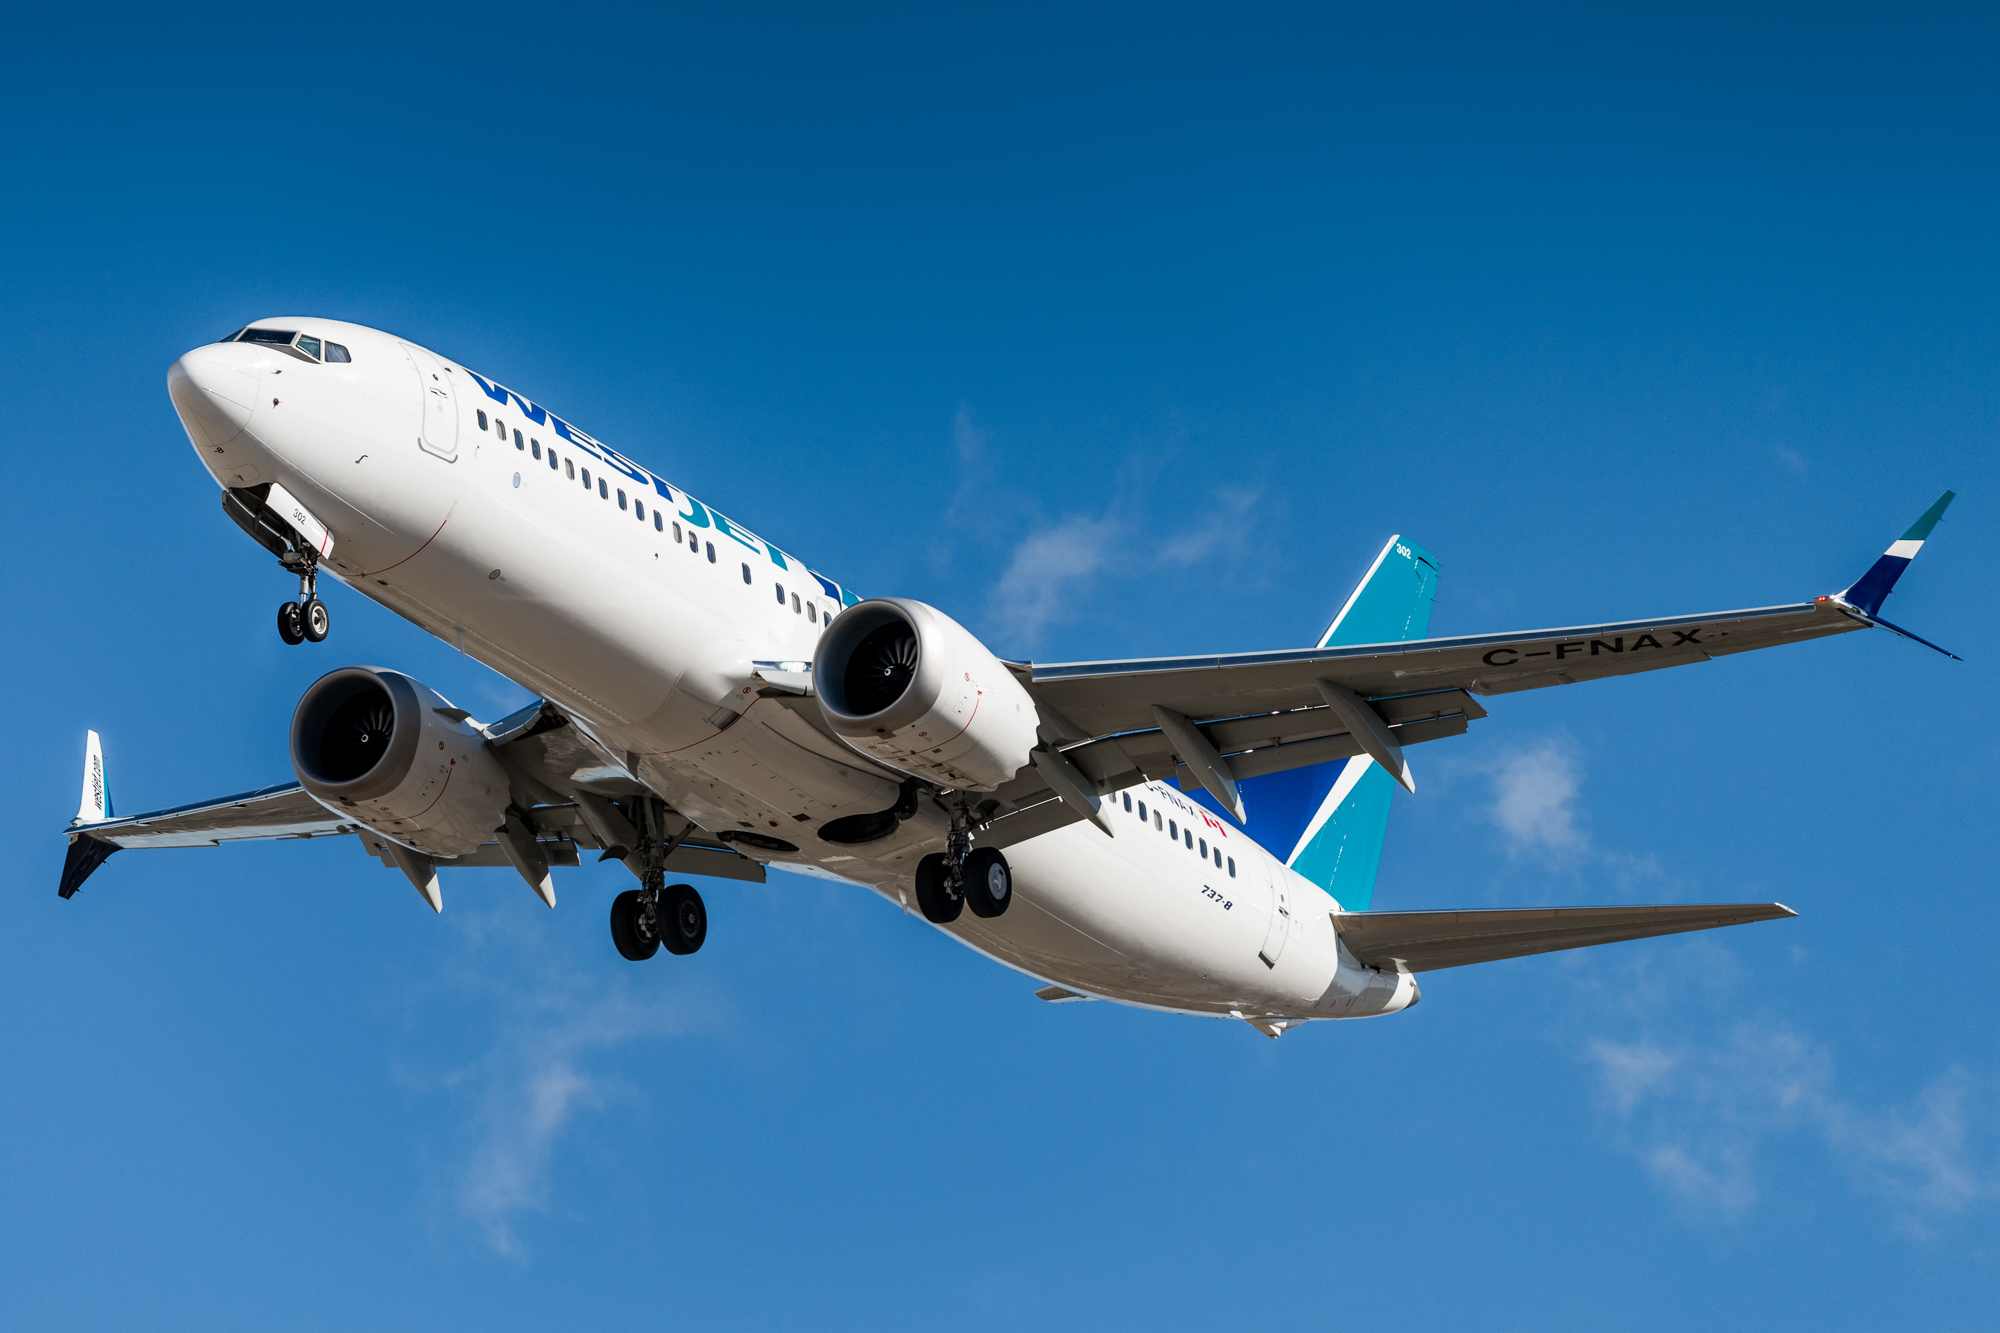 WS YYC 737 MAX 1 - Boeing 737 Max returns but some disagree